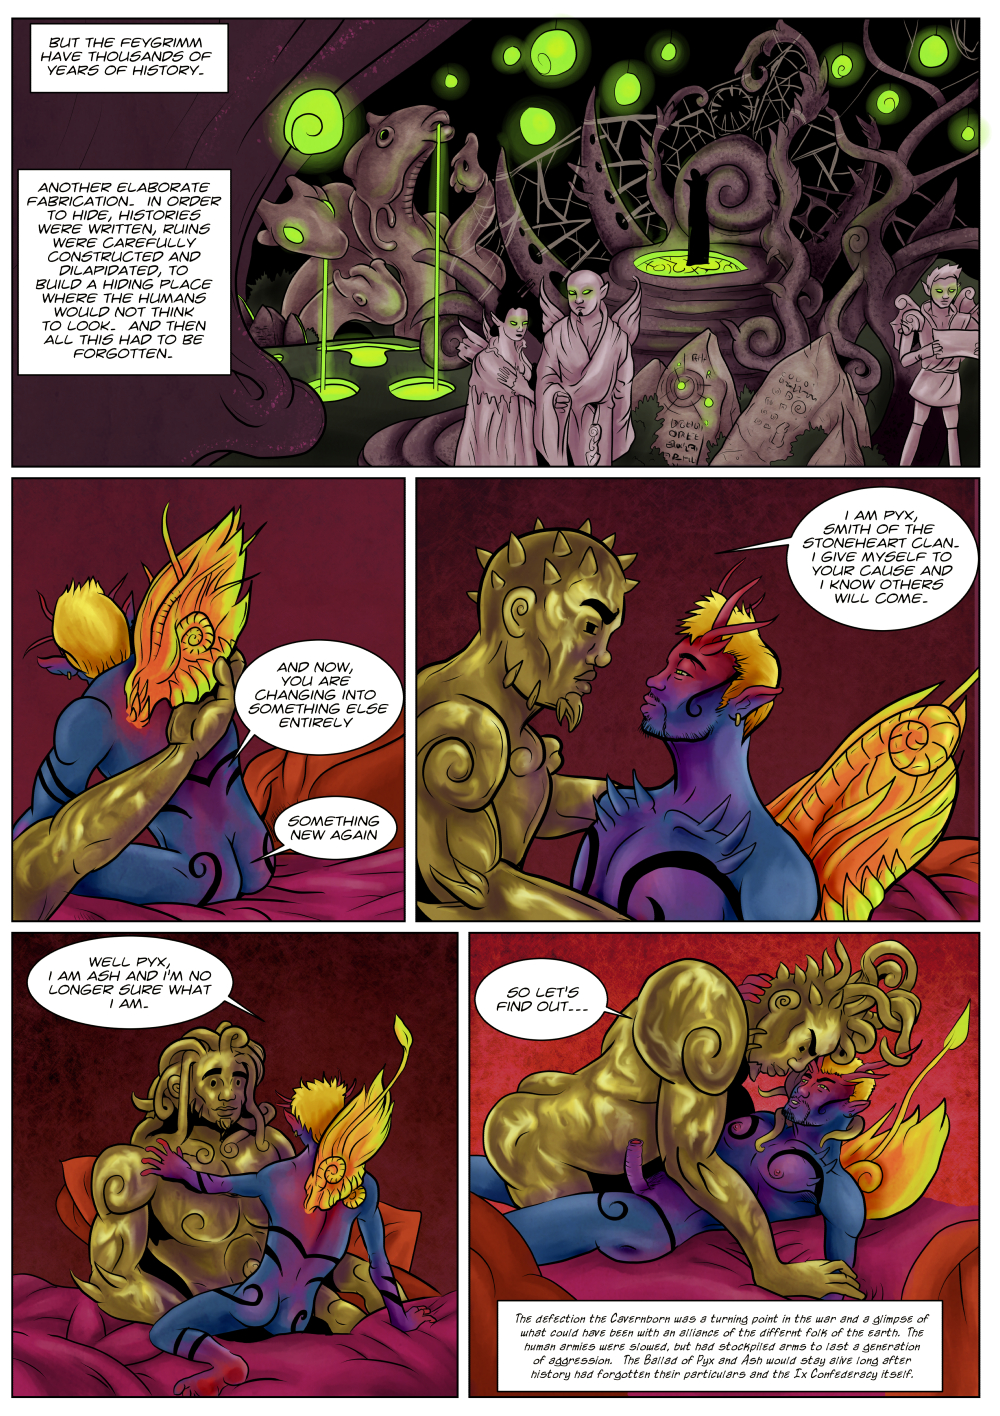 The Smith page 7